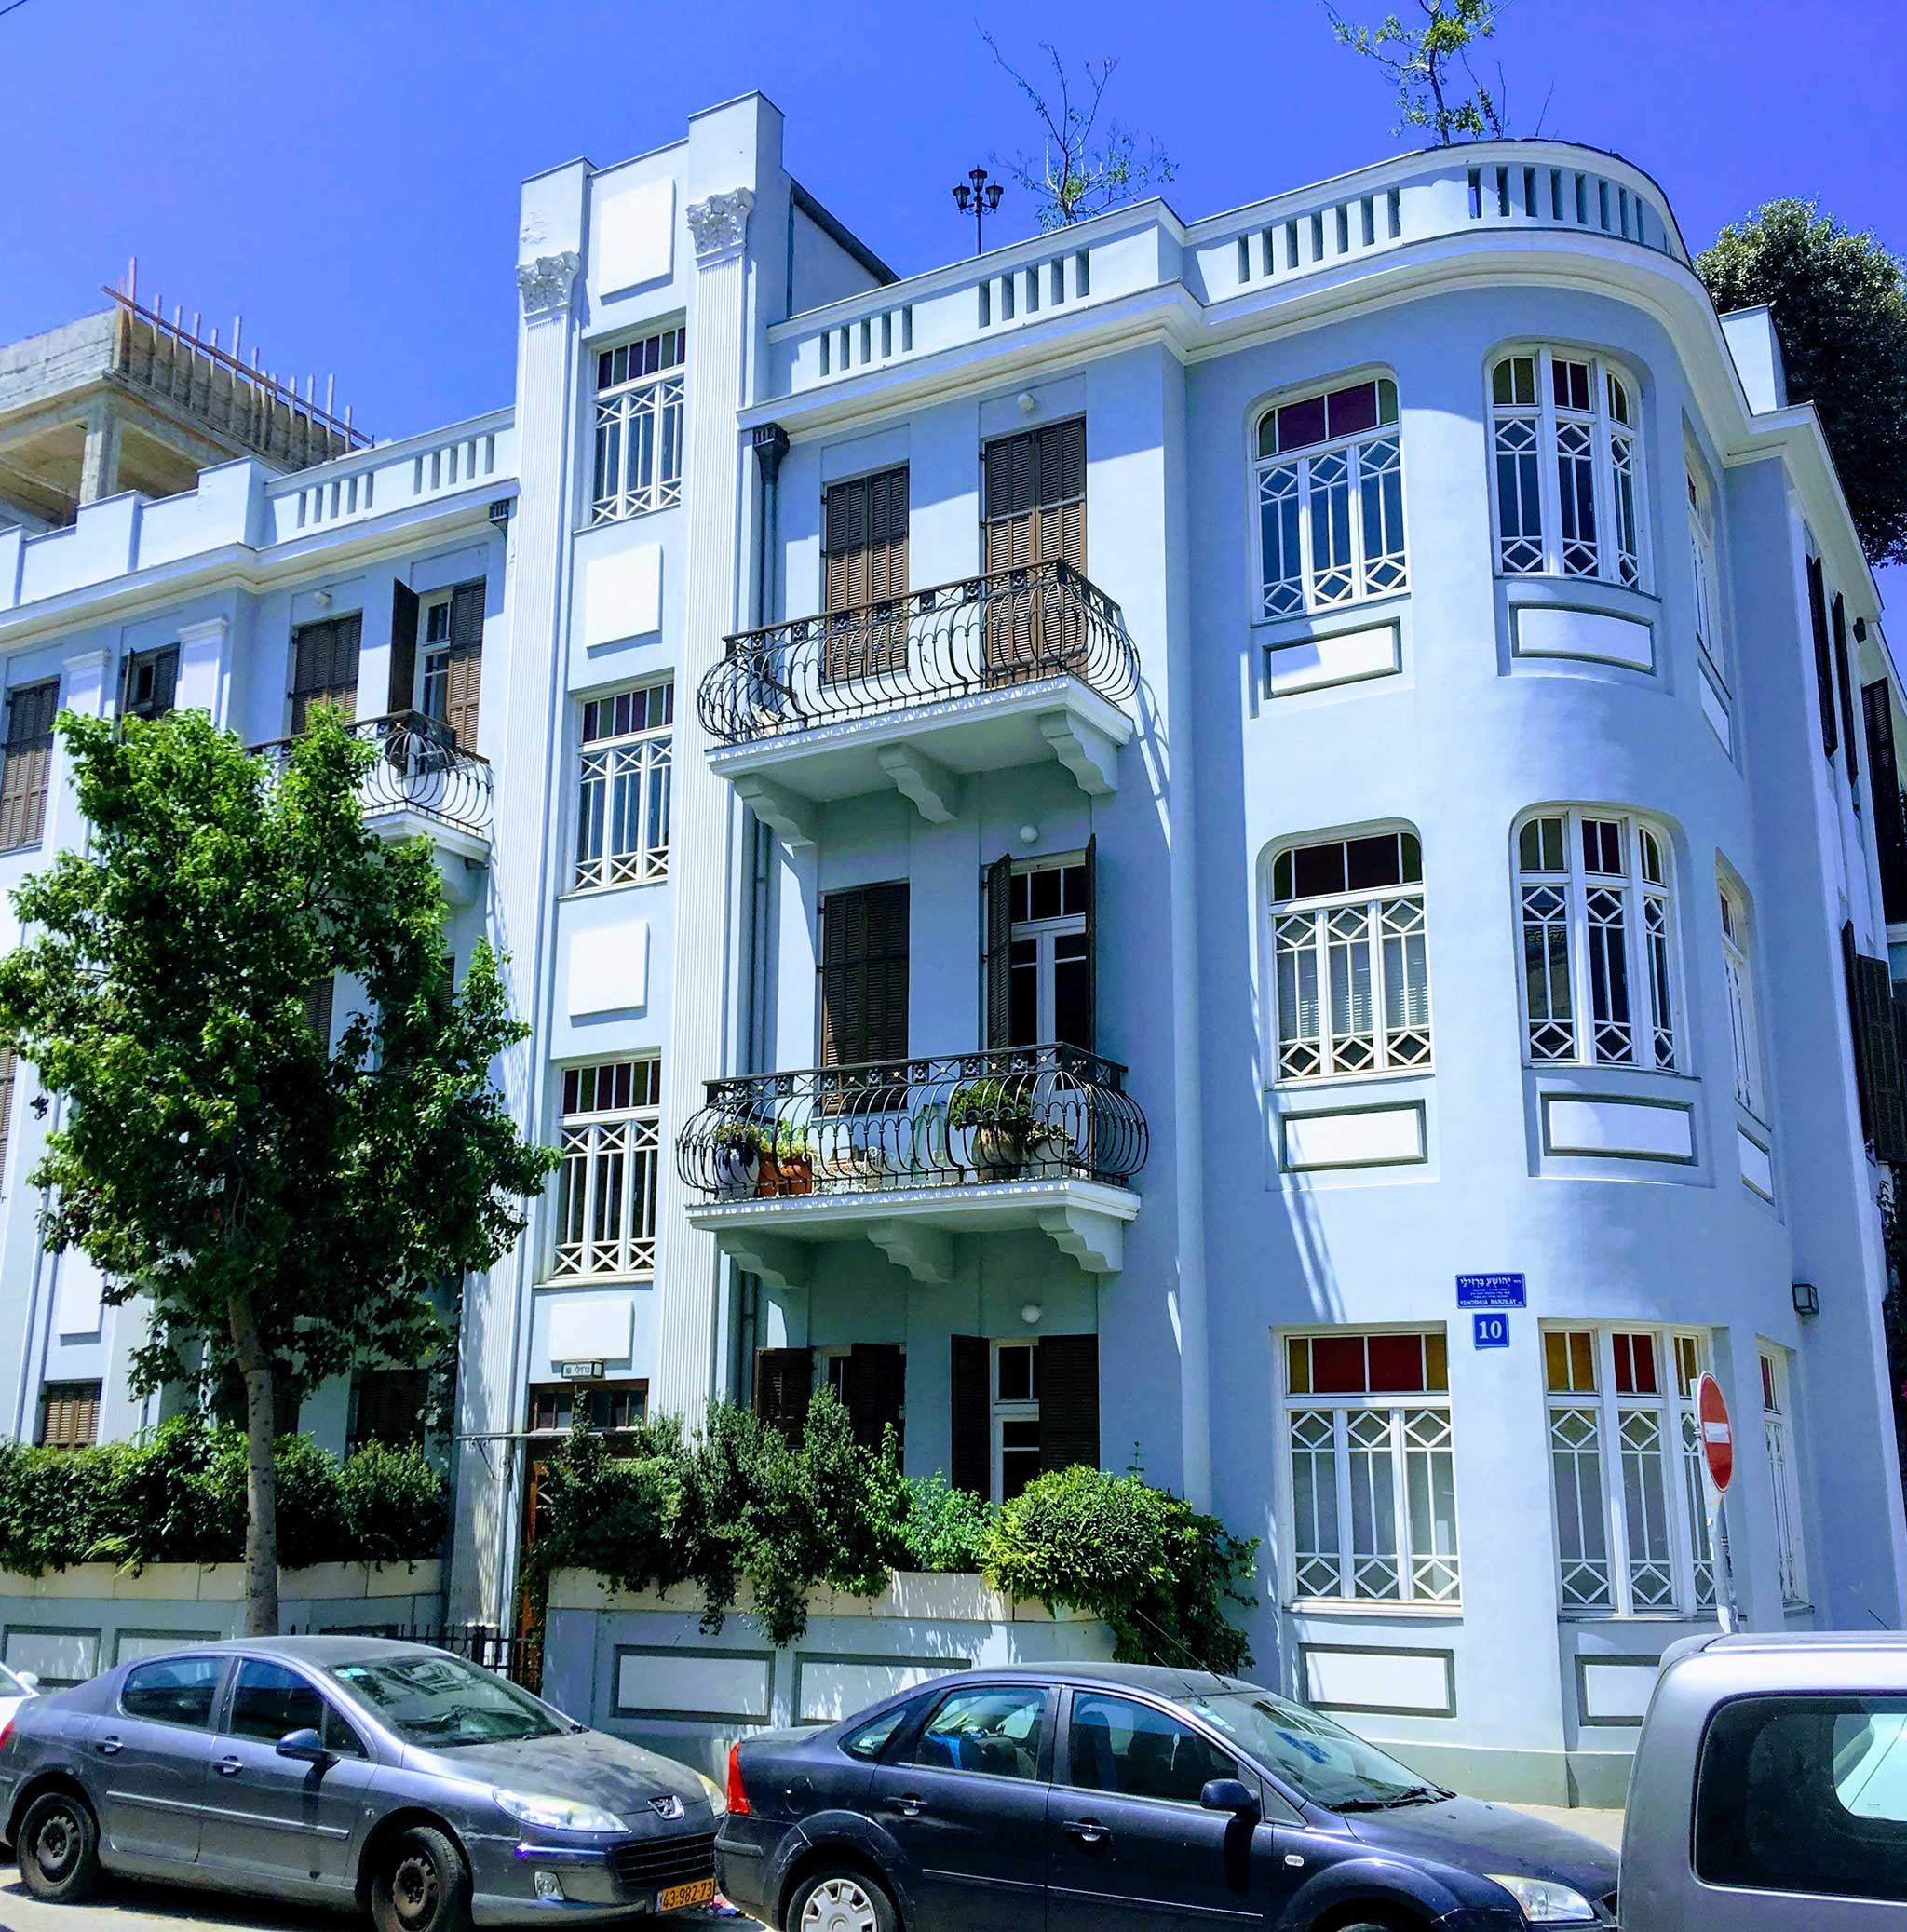 10 HaHashmal Street‏‎ on Tel Aviv audio tour The Electrifying Story of Gan HaHashmal and Its Architecture